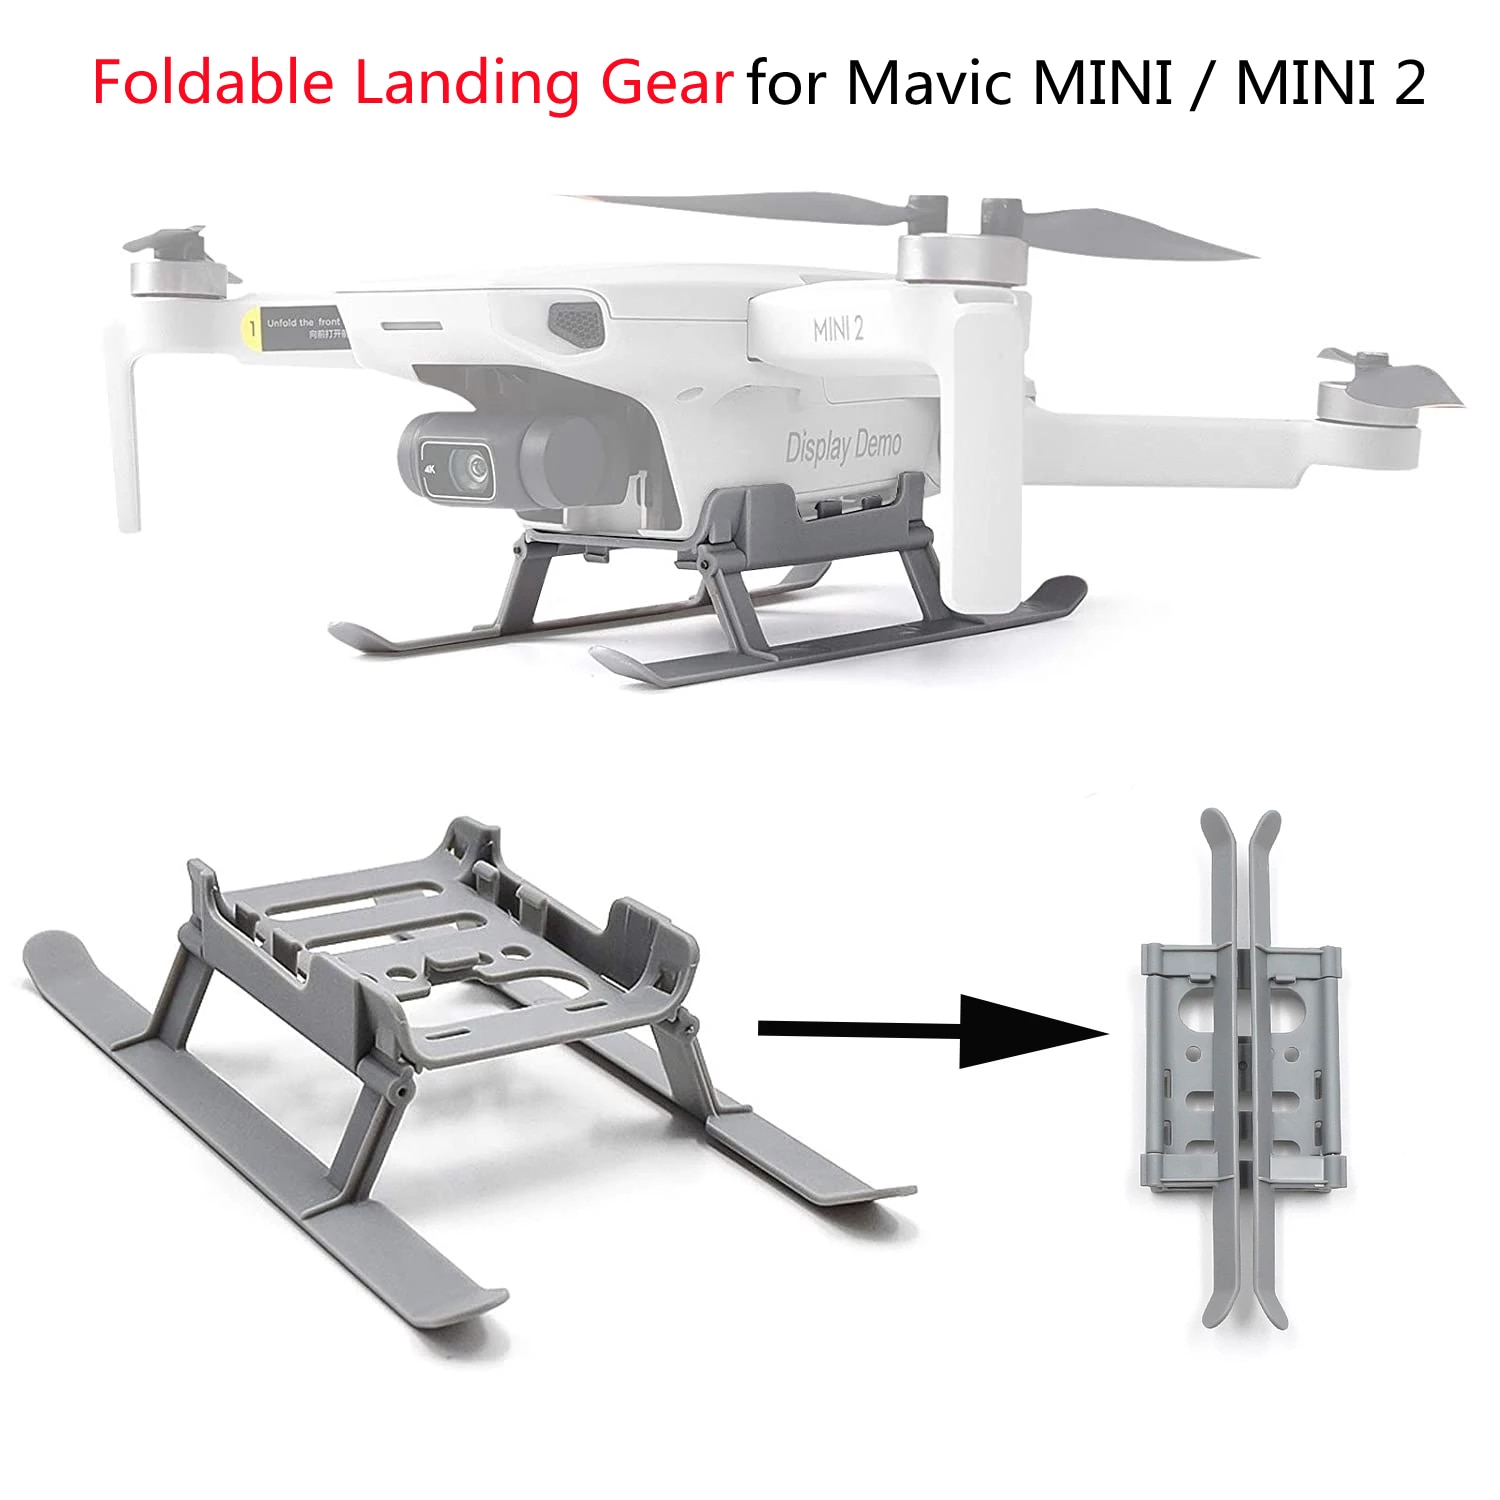 Mini 2 Drone Foldable Landing Gear Extended Height Leg Support Protector Stand Skid For DJI Mavic Mi